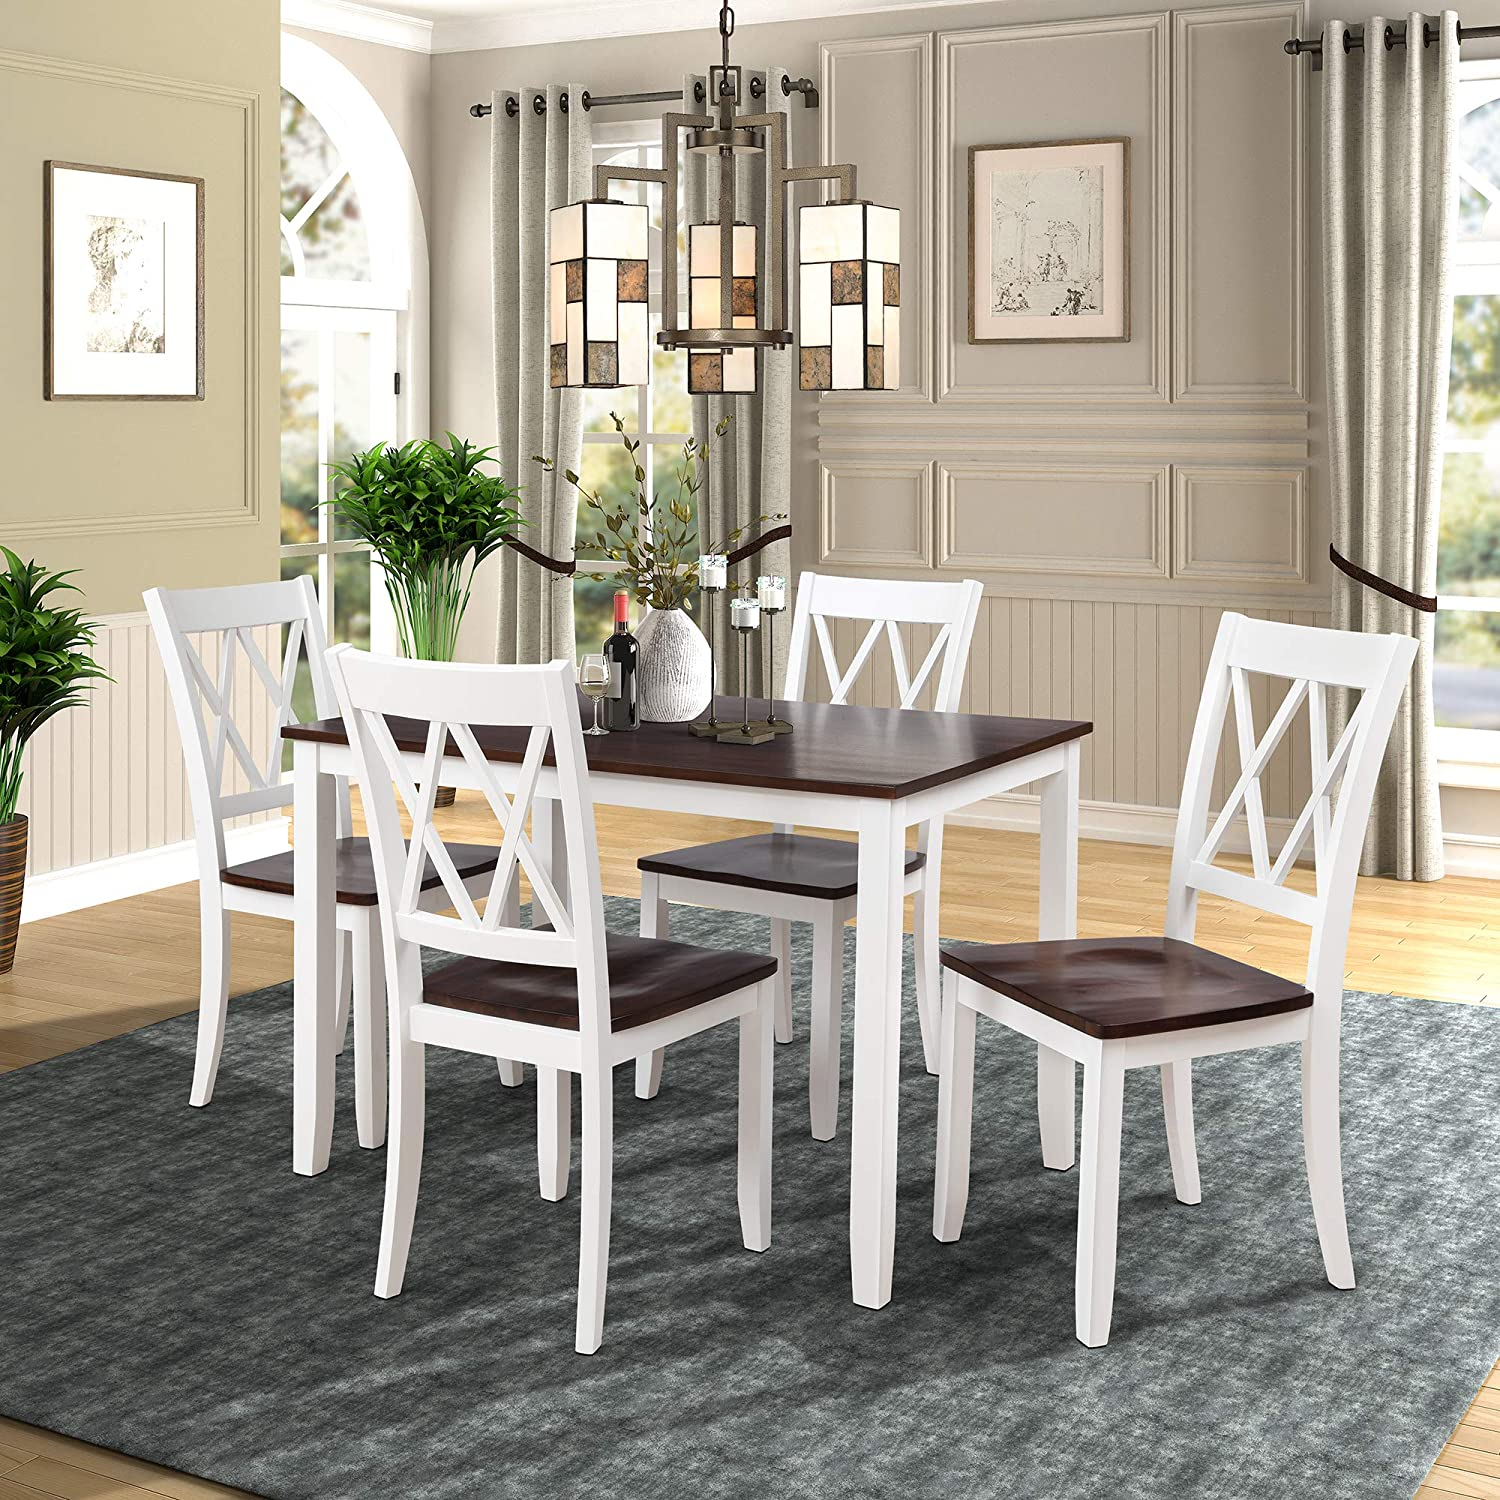 Merax Dining Table Set, Kitchen Dining Table Set for 9, Wood Table and  Chairs Set Cherry + White